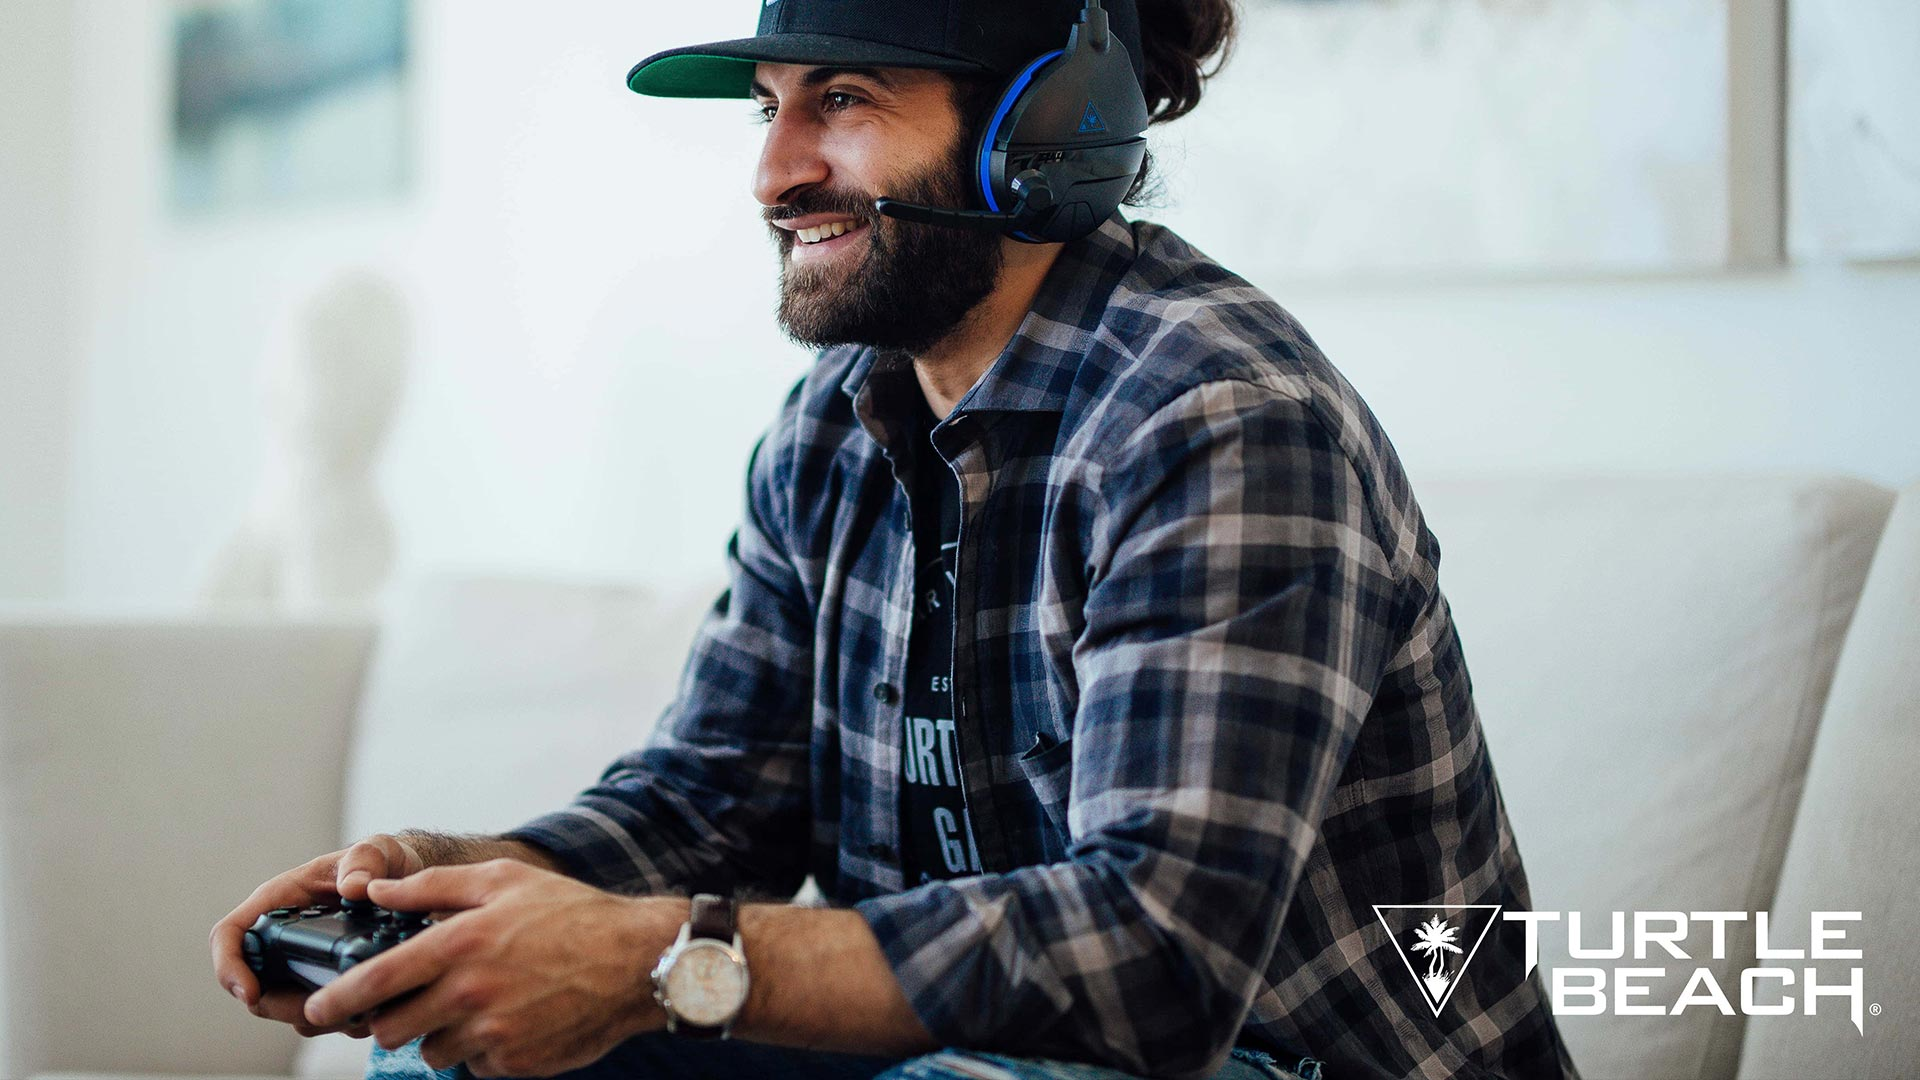 turtle beach gaming headsets